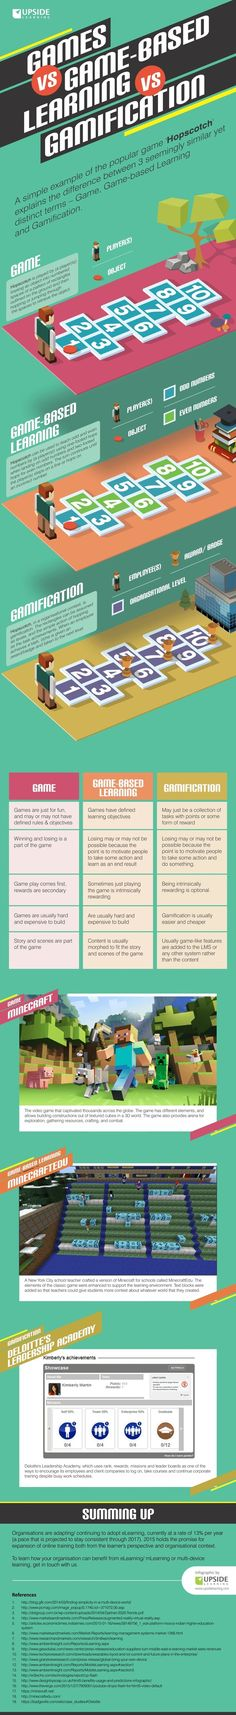 Gamification or Game-Based Learning?